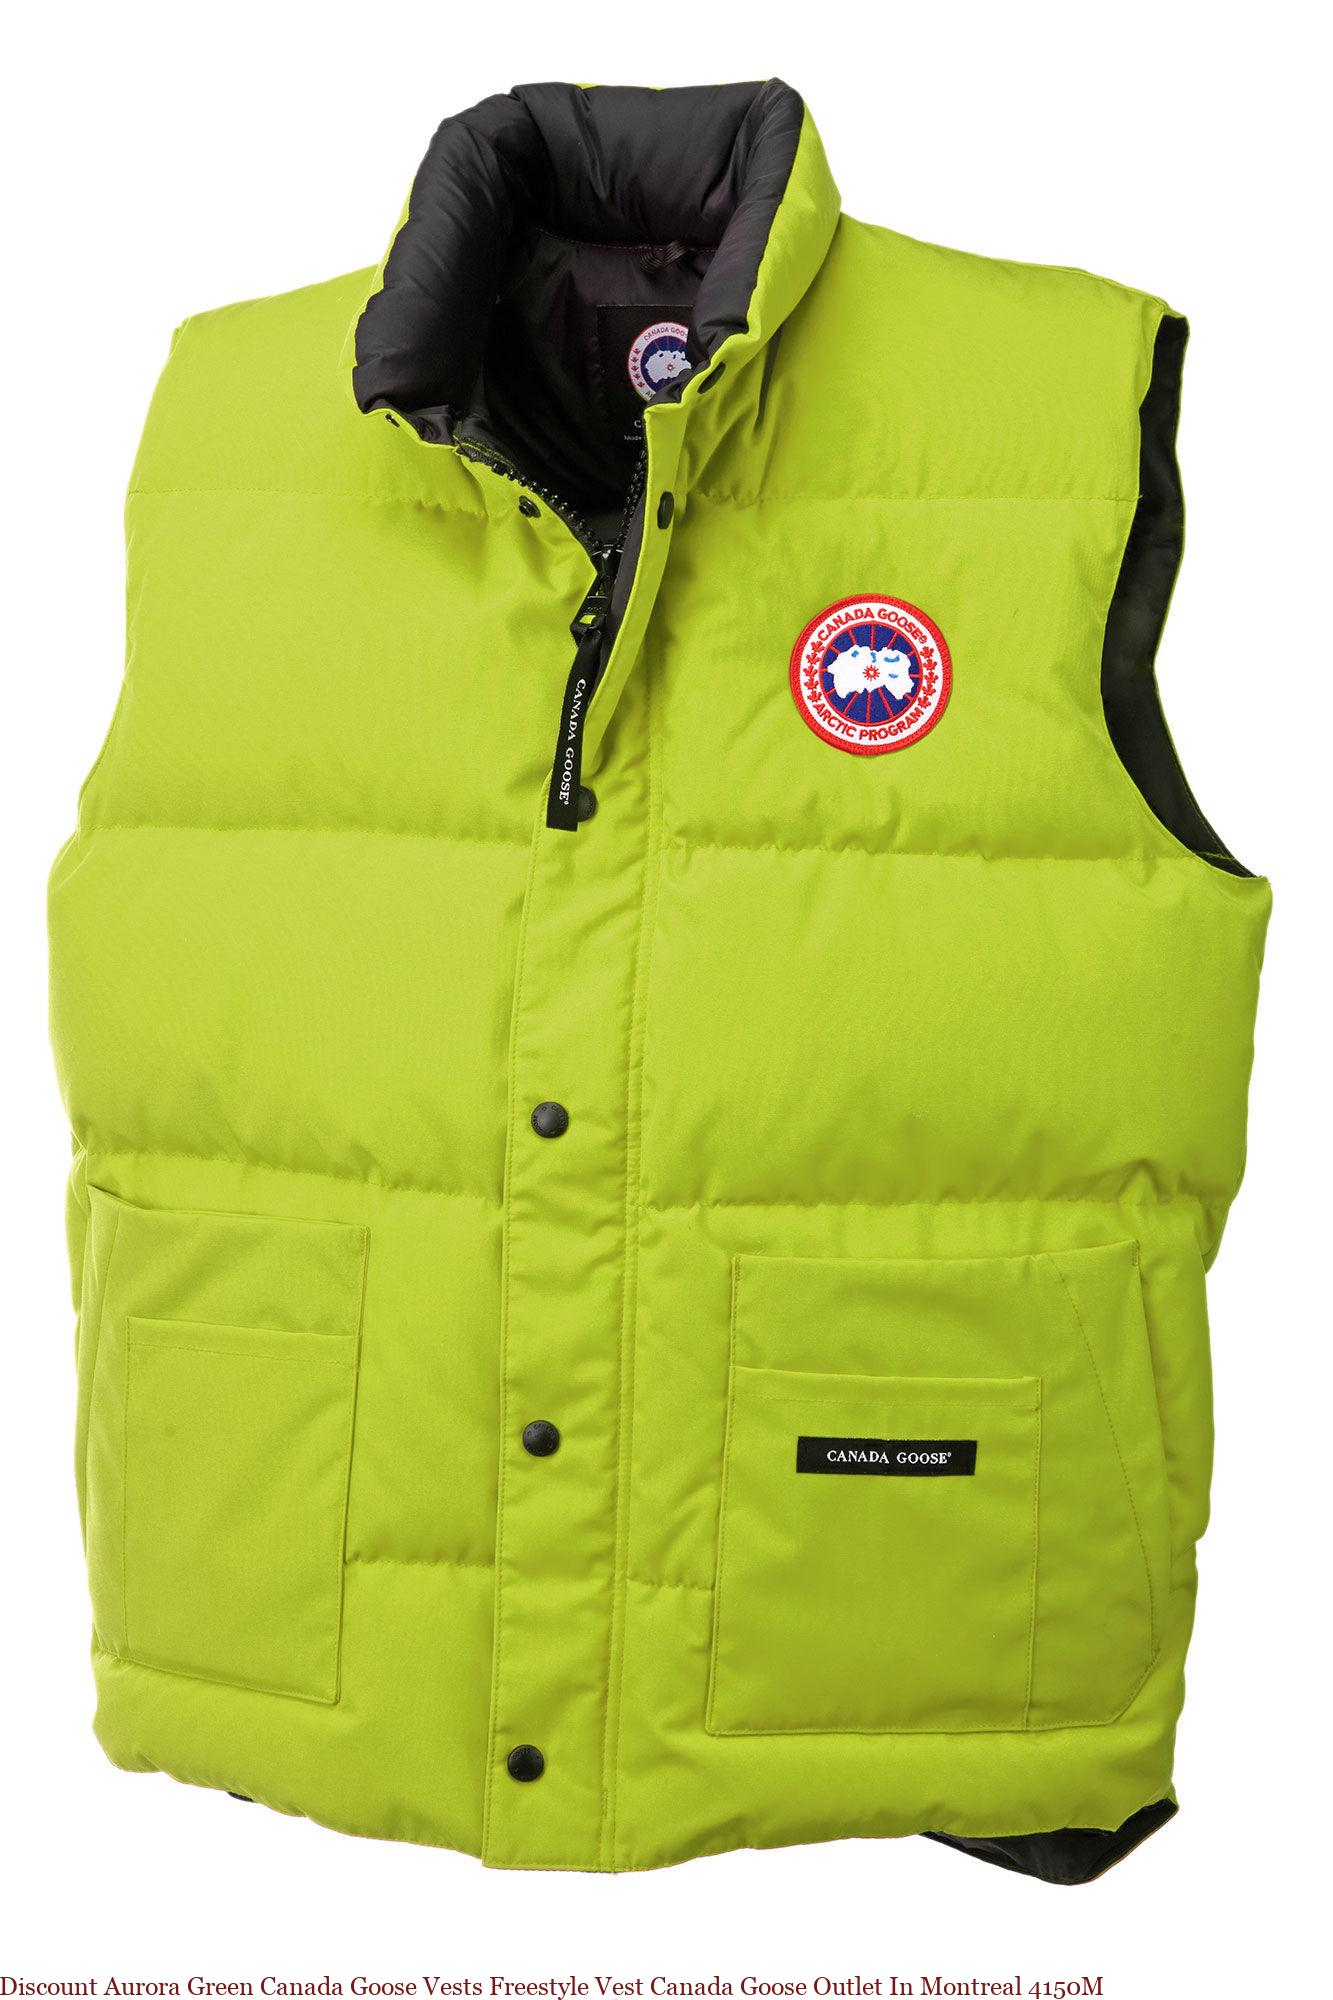 62773a68d21 Discount Aurora Green Canada Goose Vests Freestyle Vest Canada Goose Outlet  In Montreal 4150M – Best Cheap Canada Goose on Sale | Canada Goose Outlet